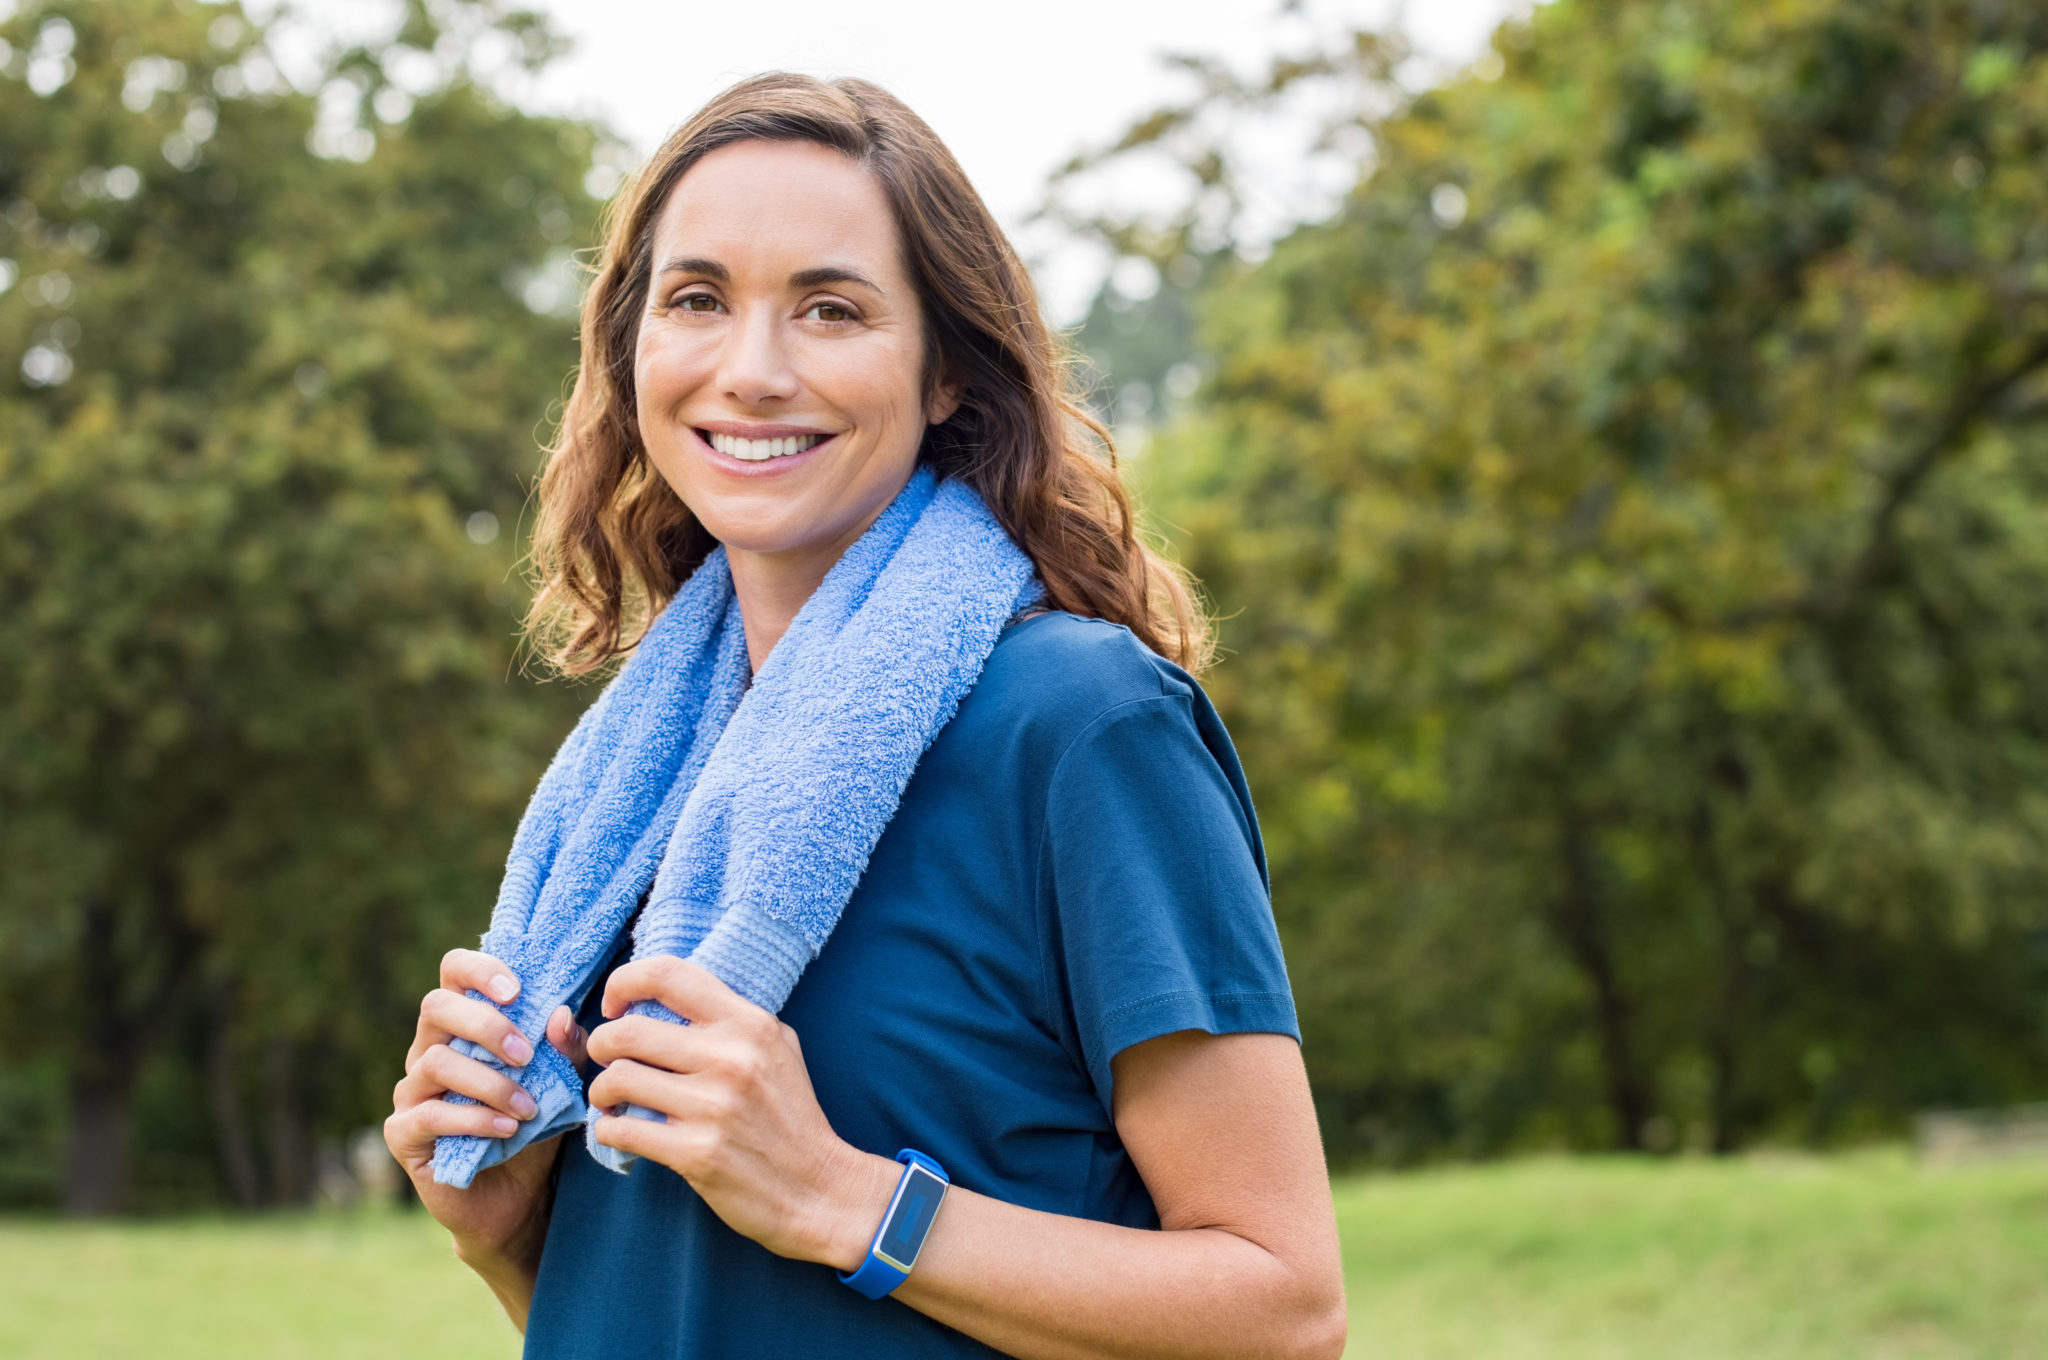 Happy mature woman smiling at park after exercise. Portrait of middle aged woman with blue towel around neck looking at camera. Beautiful mature woman feeling energetic after yoga and exercise outdoor.